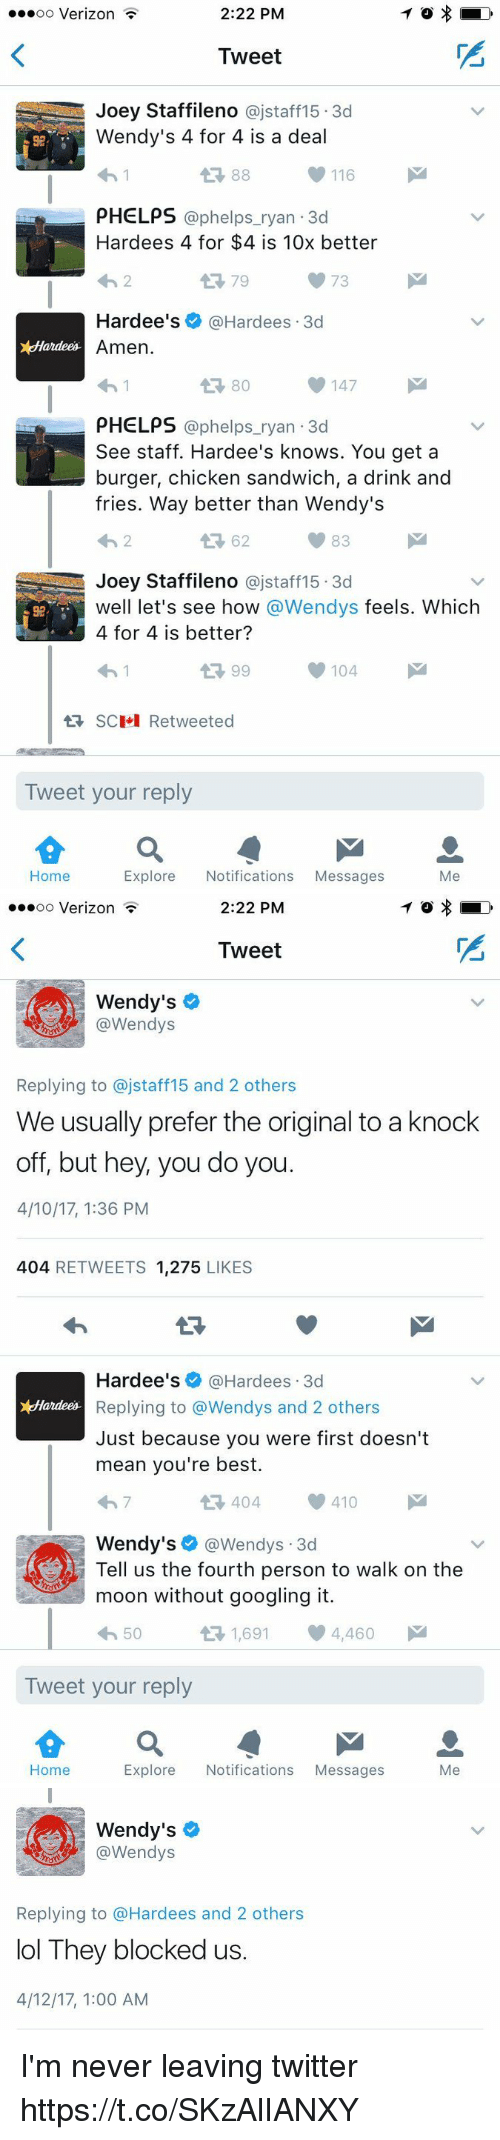 Funny, Lol, and Twitter: 2:22 PM  ooooo Verizon  Tweet  Joey Staffileno ajstaff15 3d  Wendy's 4 for 4 is a deal  116  PHELPS  @phelps ryan 3d  Hardees 4 for $4 is 10x better  t 79  Hardee's Hardees 3d  x Hardees  Amen.  147  PHELPS  @phelps ryan 3d  See staff. Hardee's knows. You get a  burger, chicken sandwich, a drink and  fries. Way better than Wendy's  83  Joey Staffileno  ajstaff15 3d  We  let's see how @Wendys feels. Which  4 for 4 is better?  99  104  M  SC  Retweeted  Tweet your reply  Home  Explore Notifications Messages  Me   2:22 PM  OO  Verizon  Tweet  Wendy's  @Wendys  Replying to ajstaff 15 and 2 others  We usually prefer the original to a knock  off, but hey, you do you  4/10/17, 136 PM  404 RETWEETS 1.275  LIKES  Hardee's Hardees 3d  x Hardees  Replying to @Wendys and 2 others  Just because you were first doesn't  mean you're best.  410  404  Wendy's  @Wendys 3d  Tell us the fourth person to walk on the  moon without googling it.  1,691 4,460  M  50  t Tweet your reply  Home  Me  Explore  Notifications  Messages   Wendy's  (a Wendys  Replying to @Hardees and 2 others  lol They blocked us.  4/12/17, 1 00 AM I'm never leaving twitter https://t.co/SKzAlIANXY